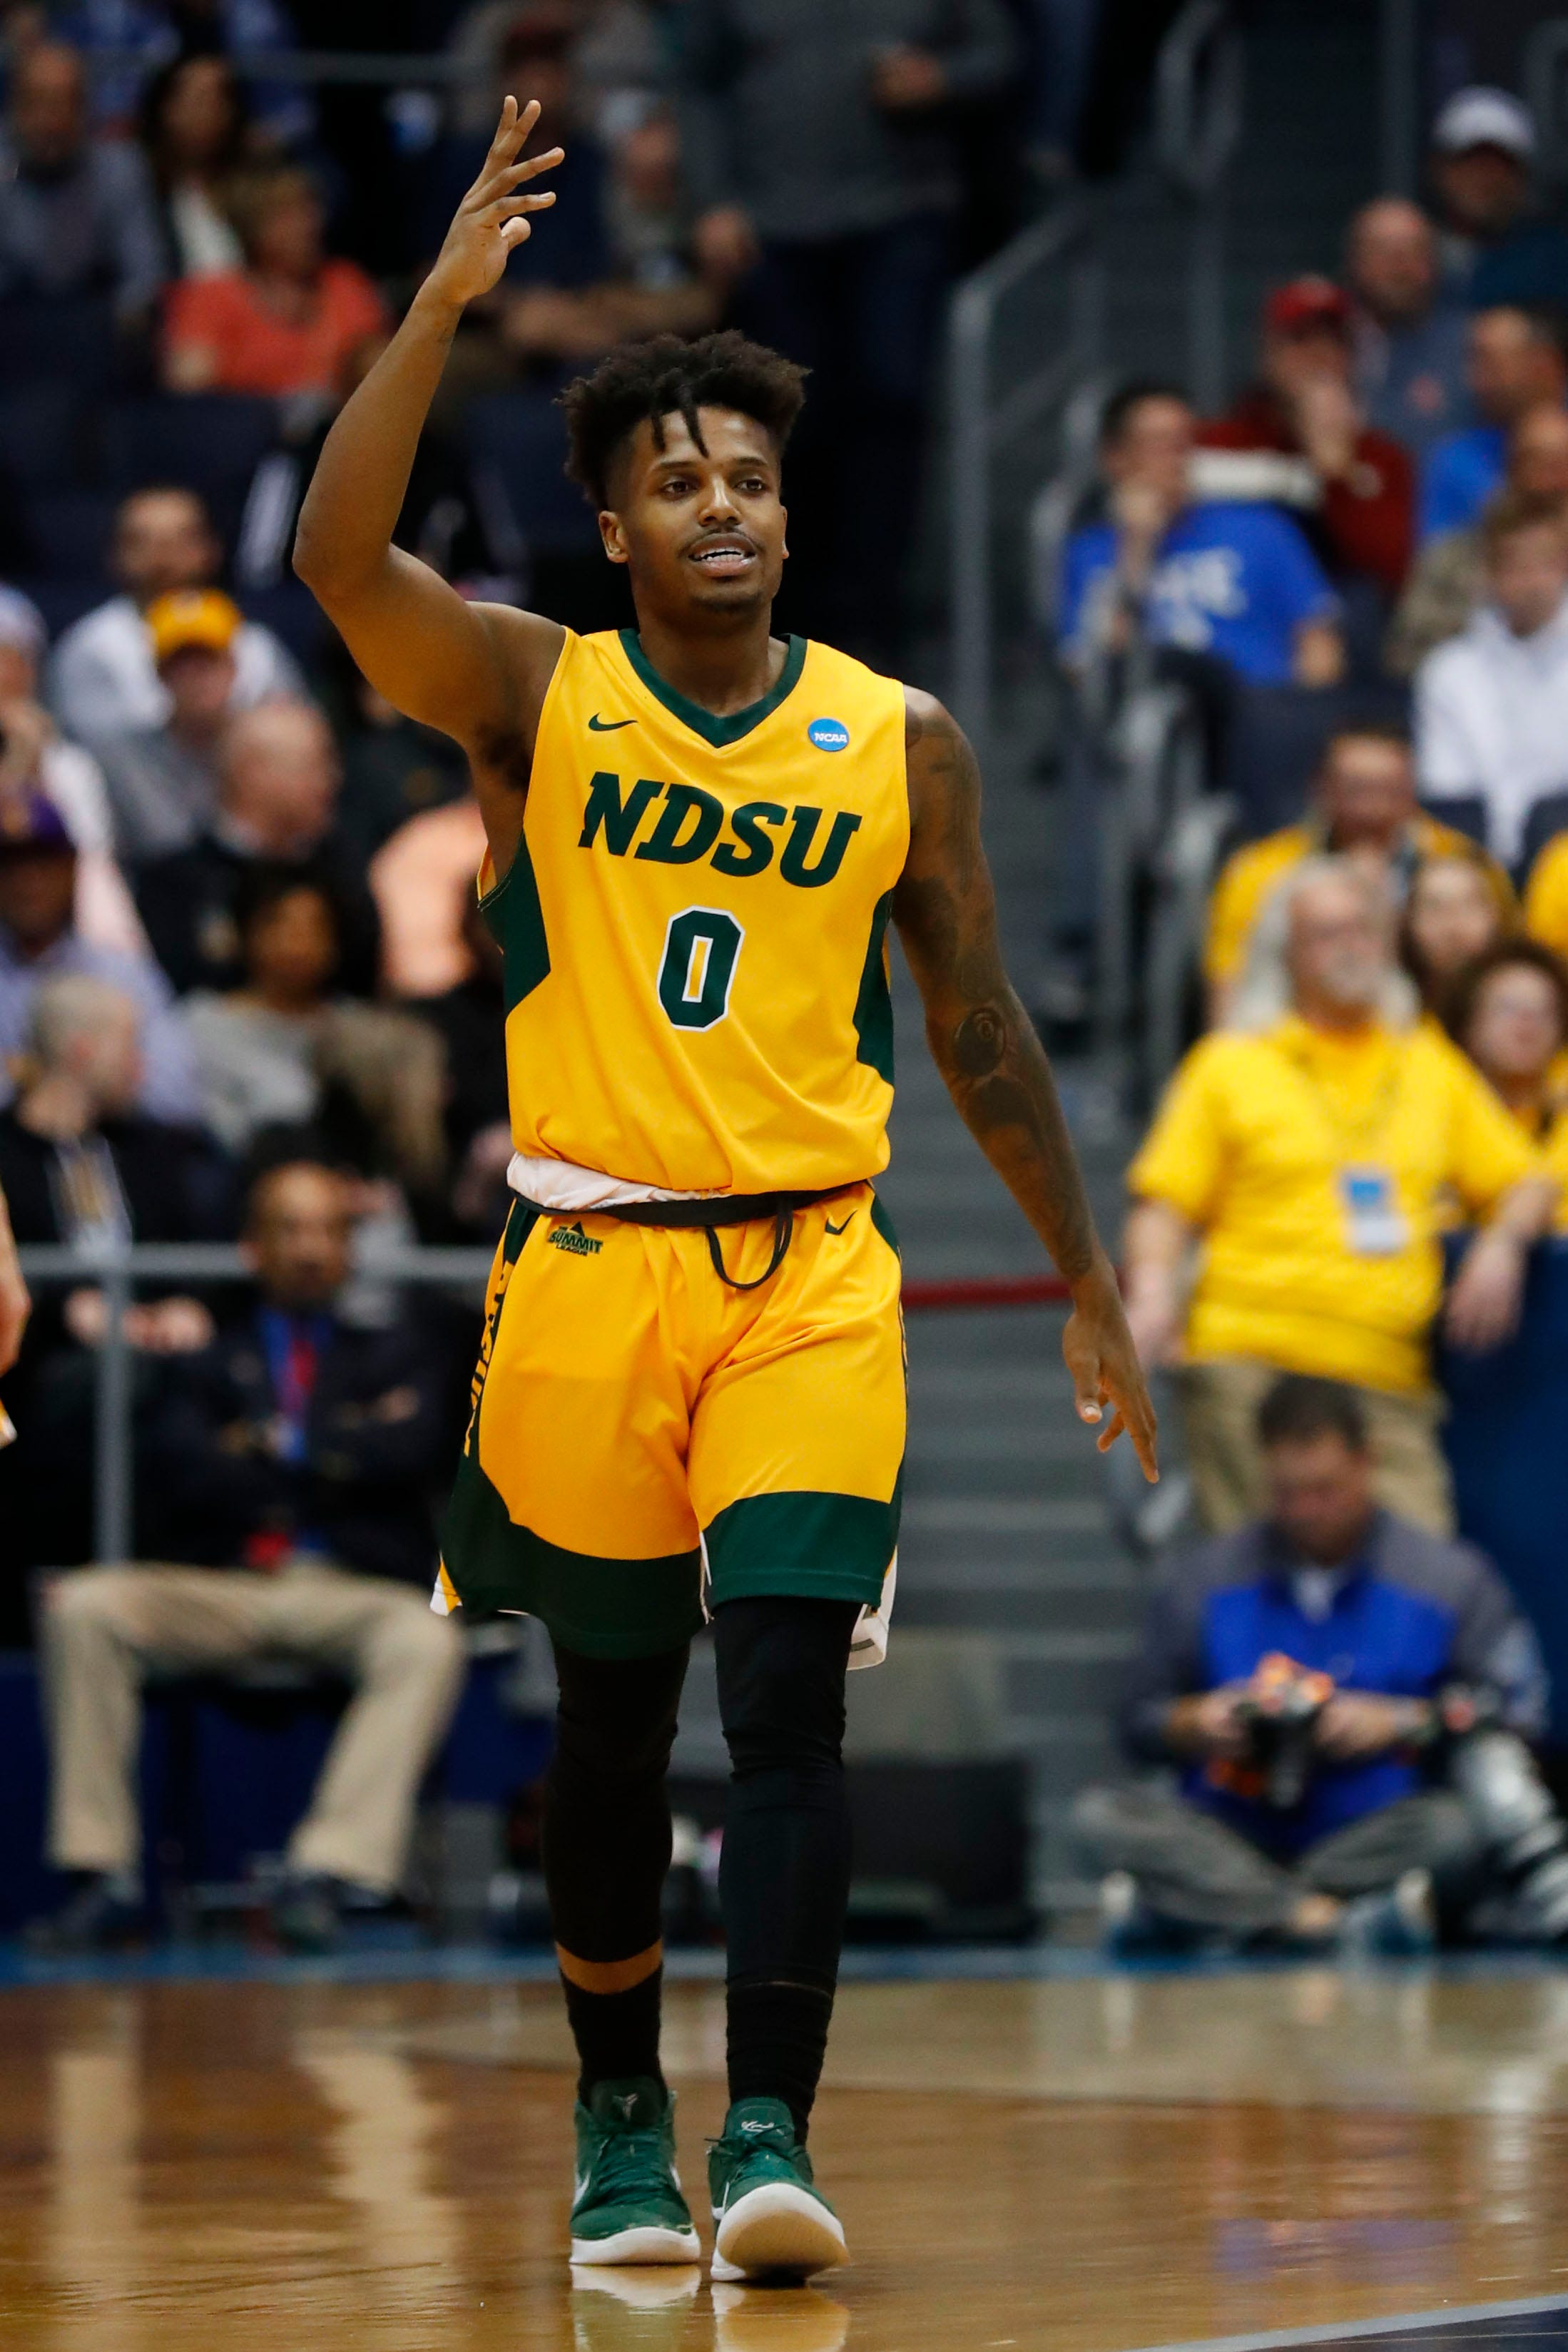 North Dakota State beats North Carolina Central in First Four to set up matchup with Duke